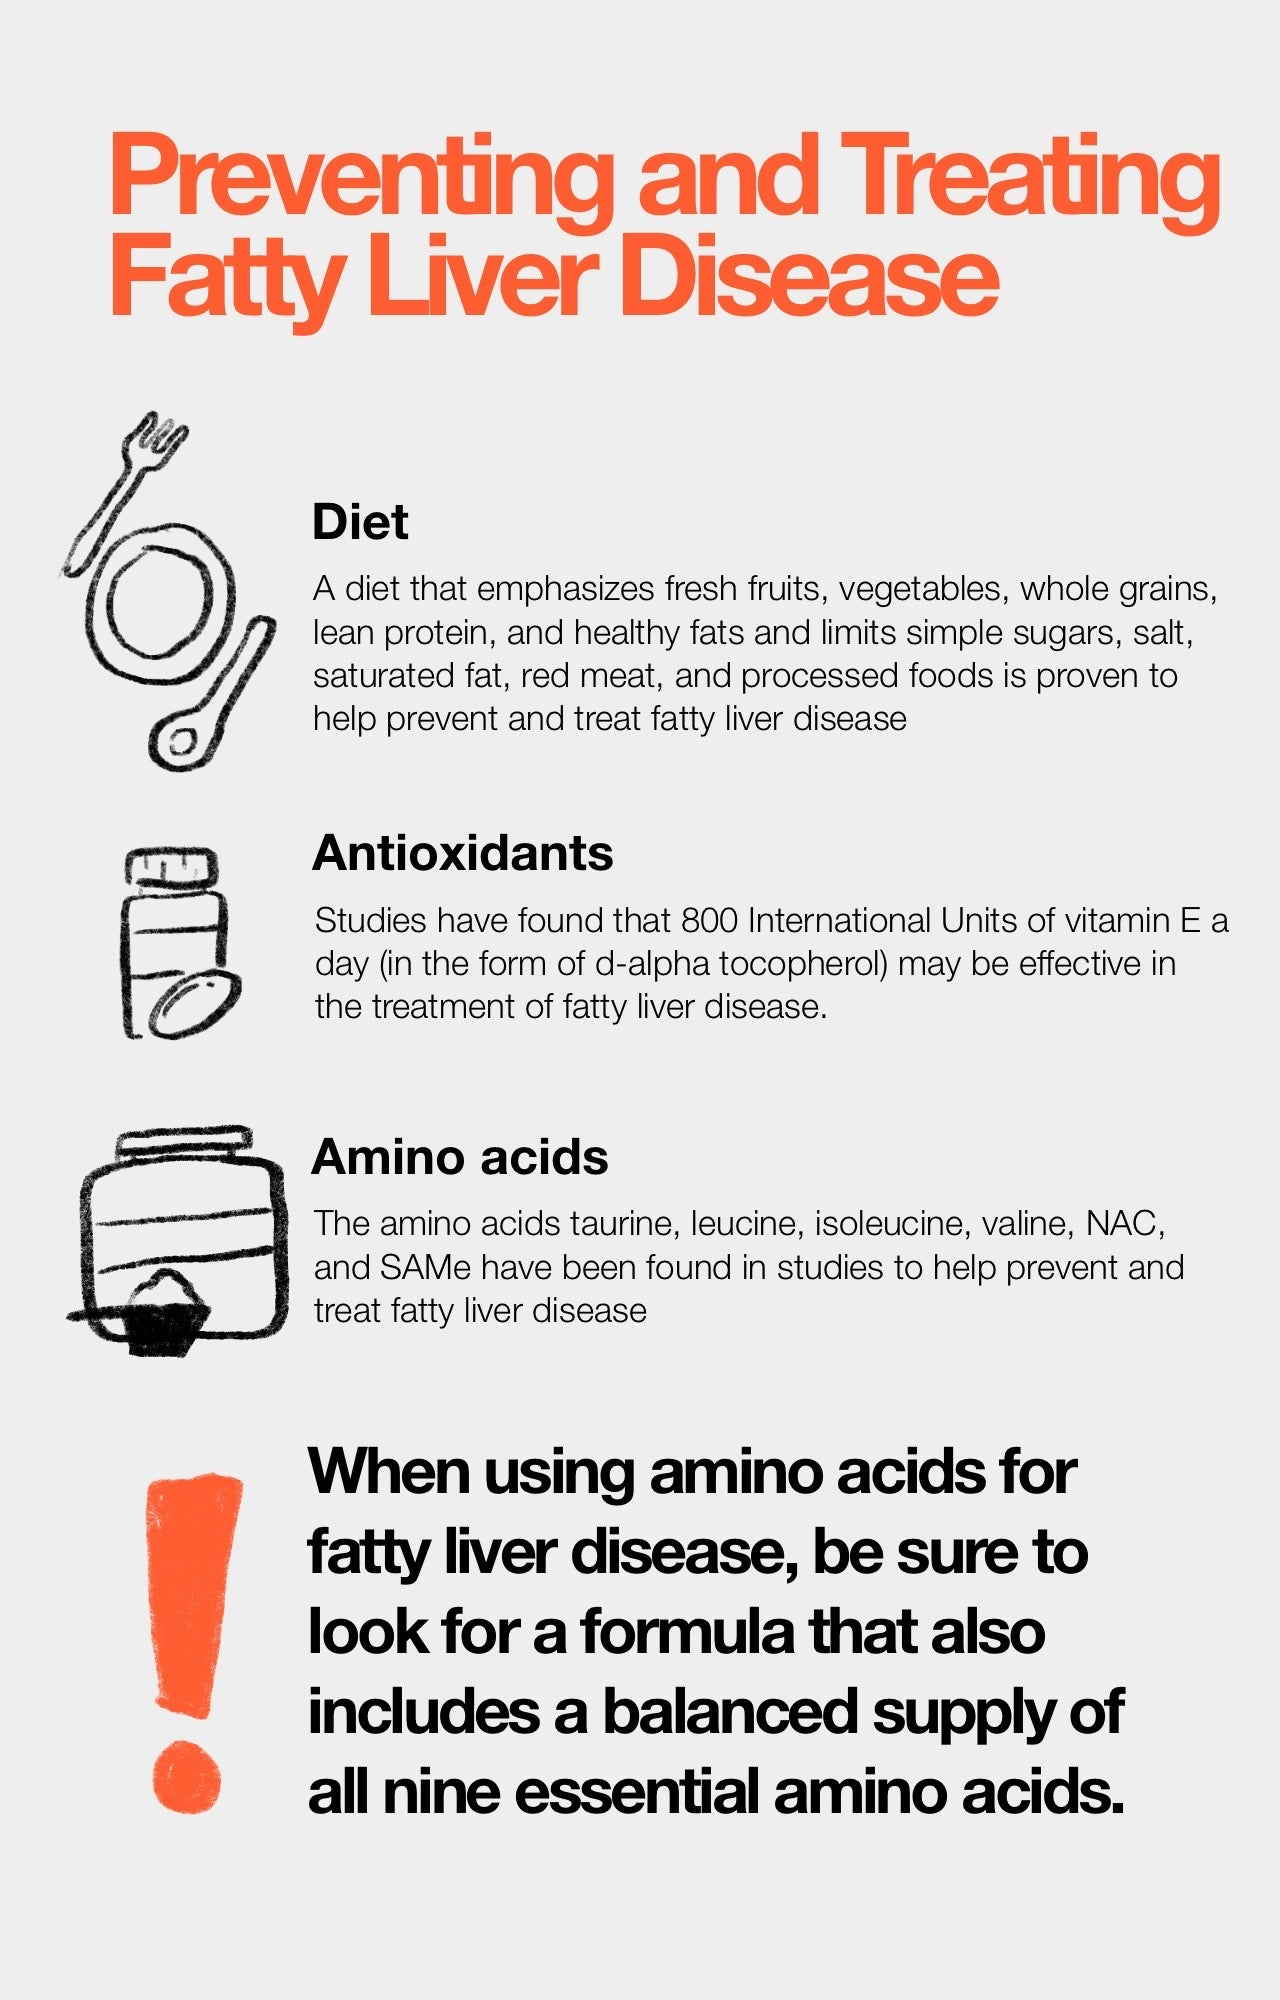 Preventing and Treating Fatty Liver Disease